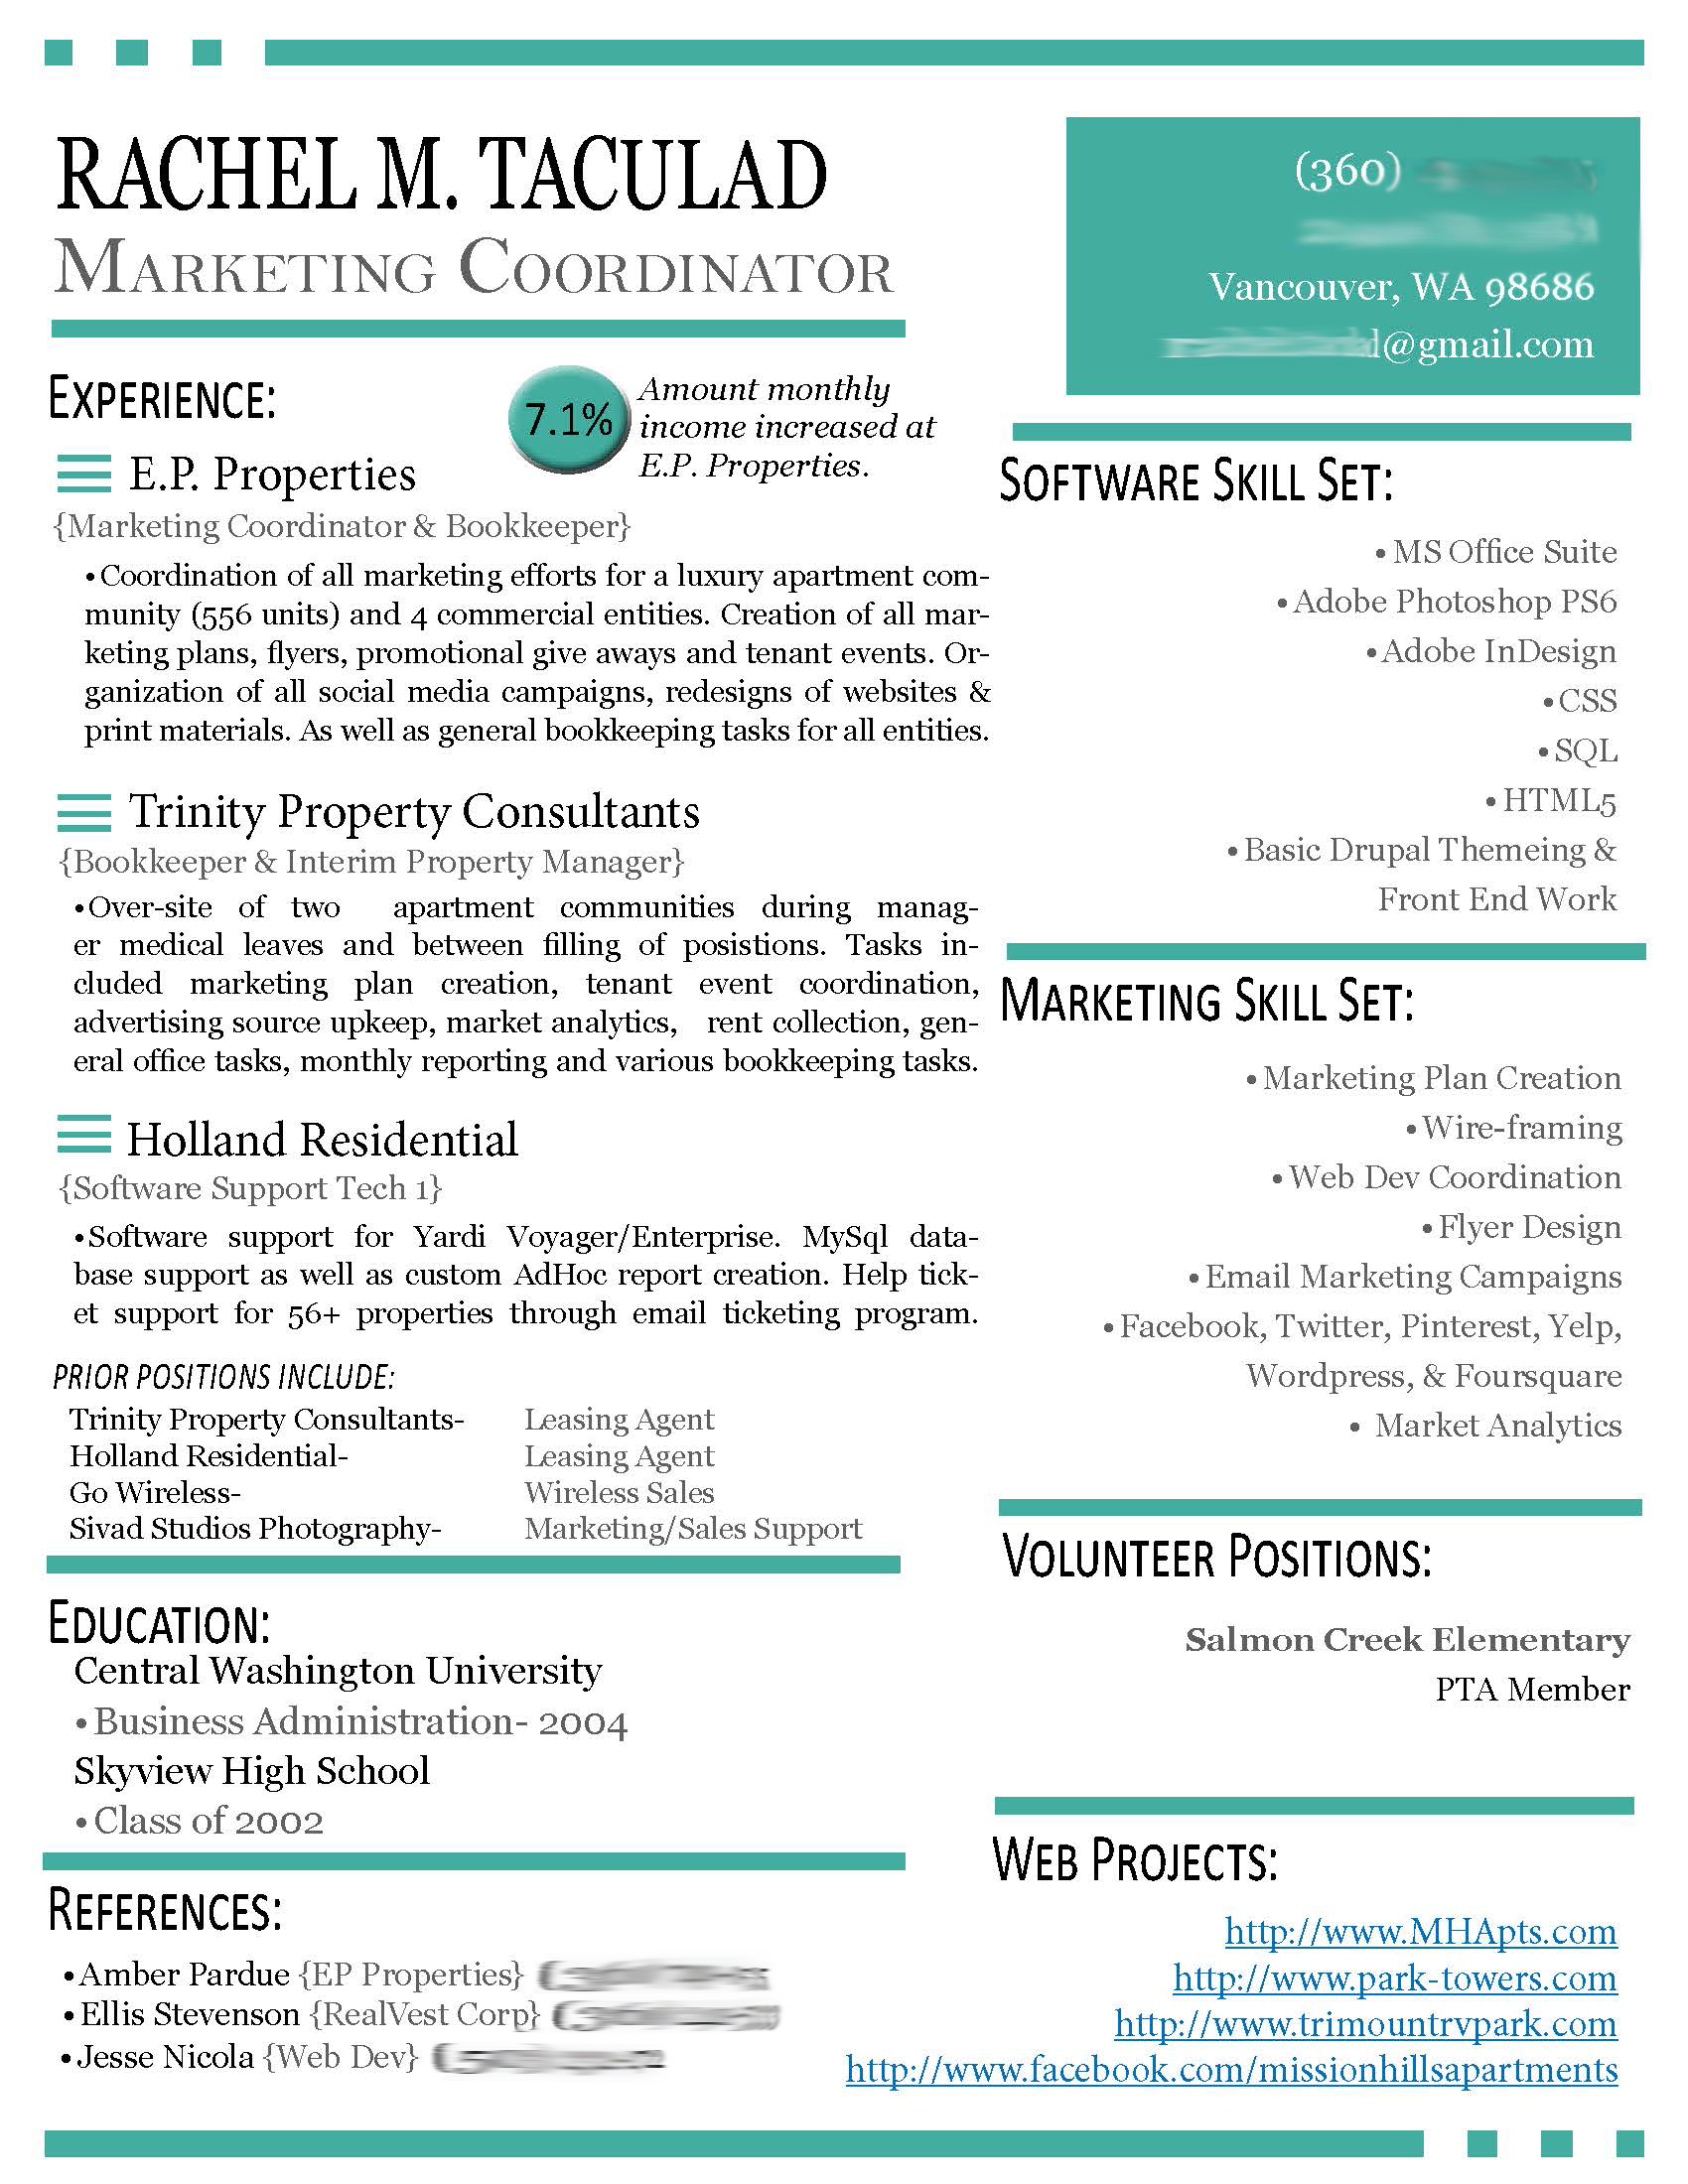 need help with my resume resume help free resume writing examples tips to write a resume2